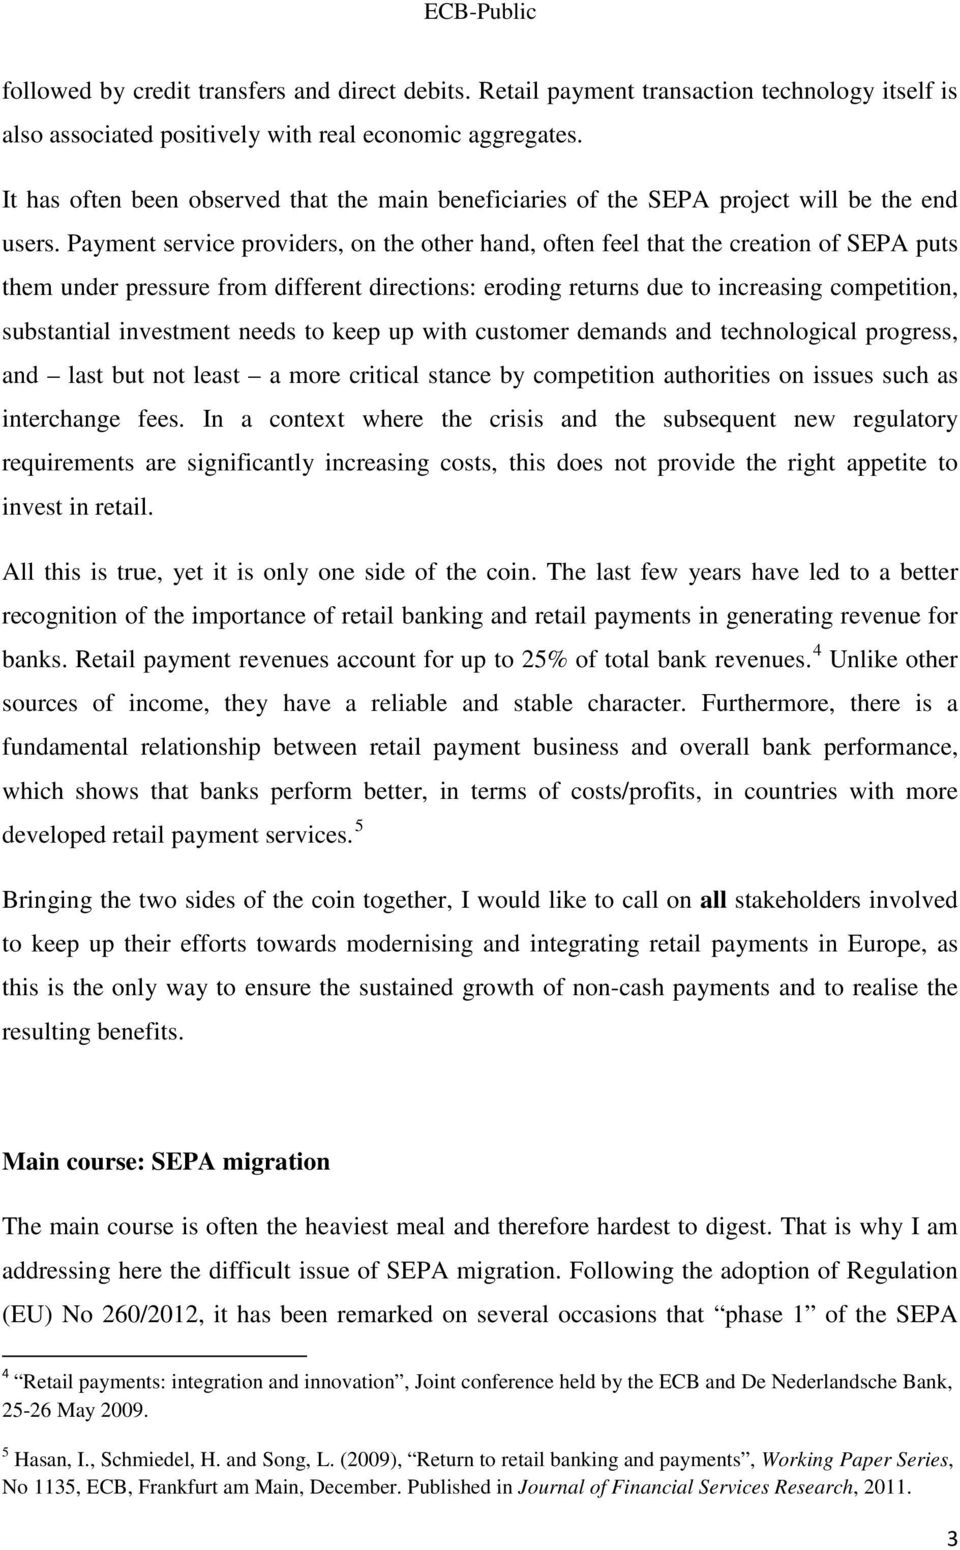 Payment service providers, on the other hand, often feel that the creation of SEPA puts them under pressure from different directions: eroding returns due to increasing competition, substantial